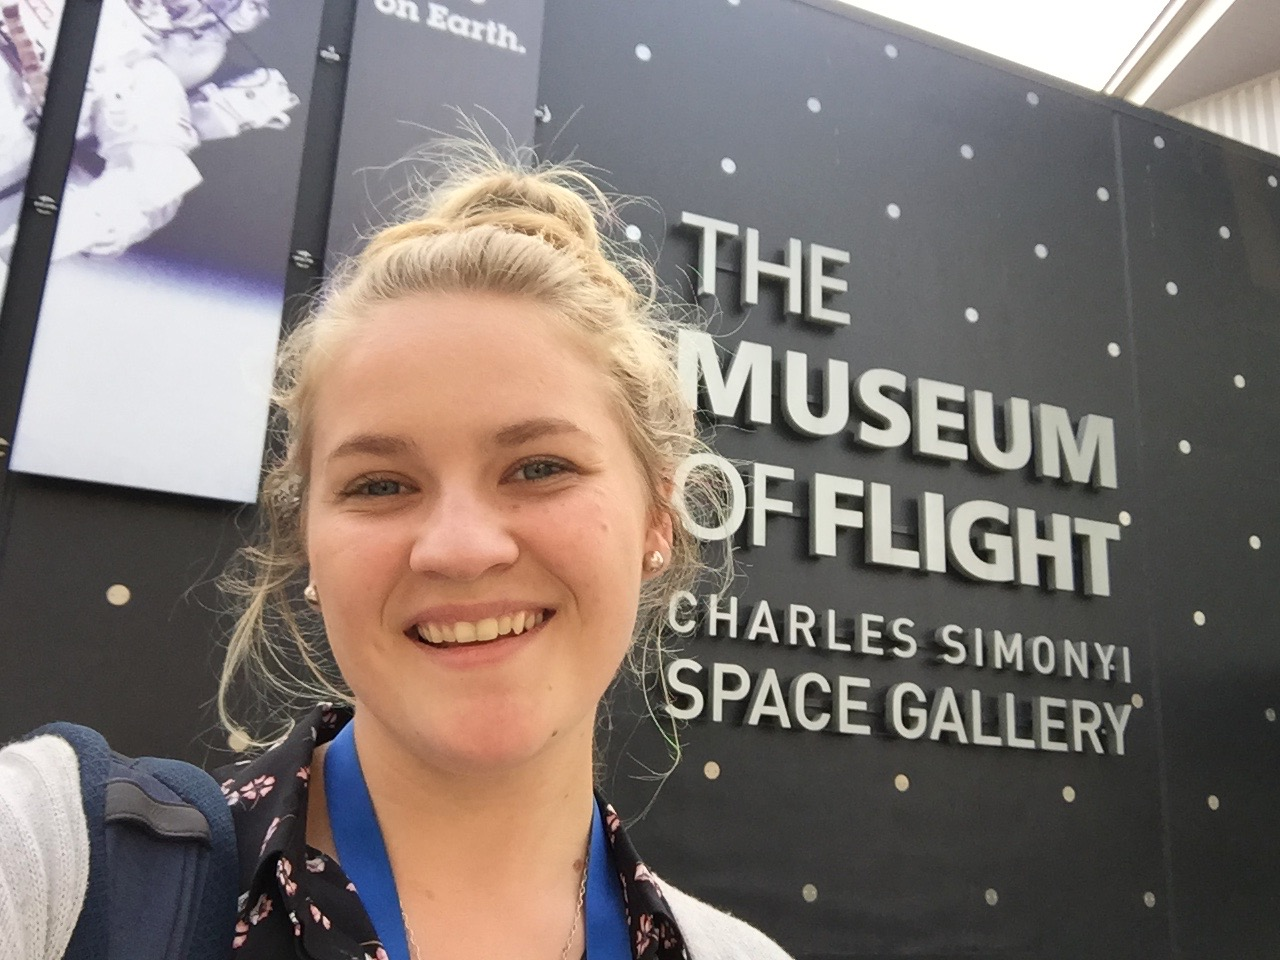 Me in front of the Charles Simonyi Space Gallery entrance at  the Museum of Flight  in Seattle, WA where I worked this summer.